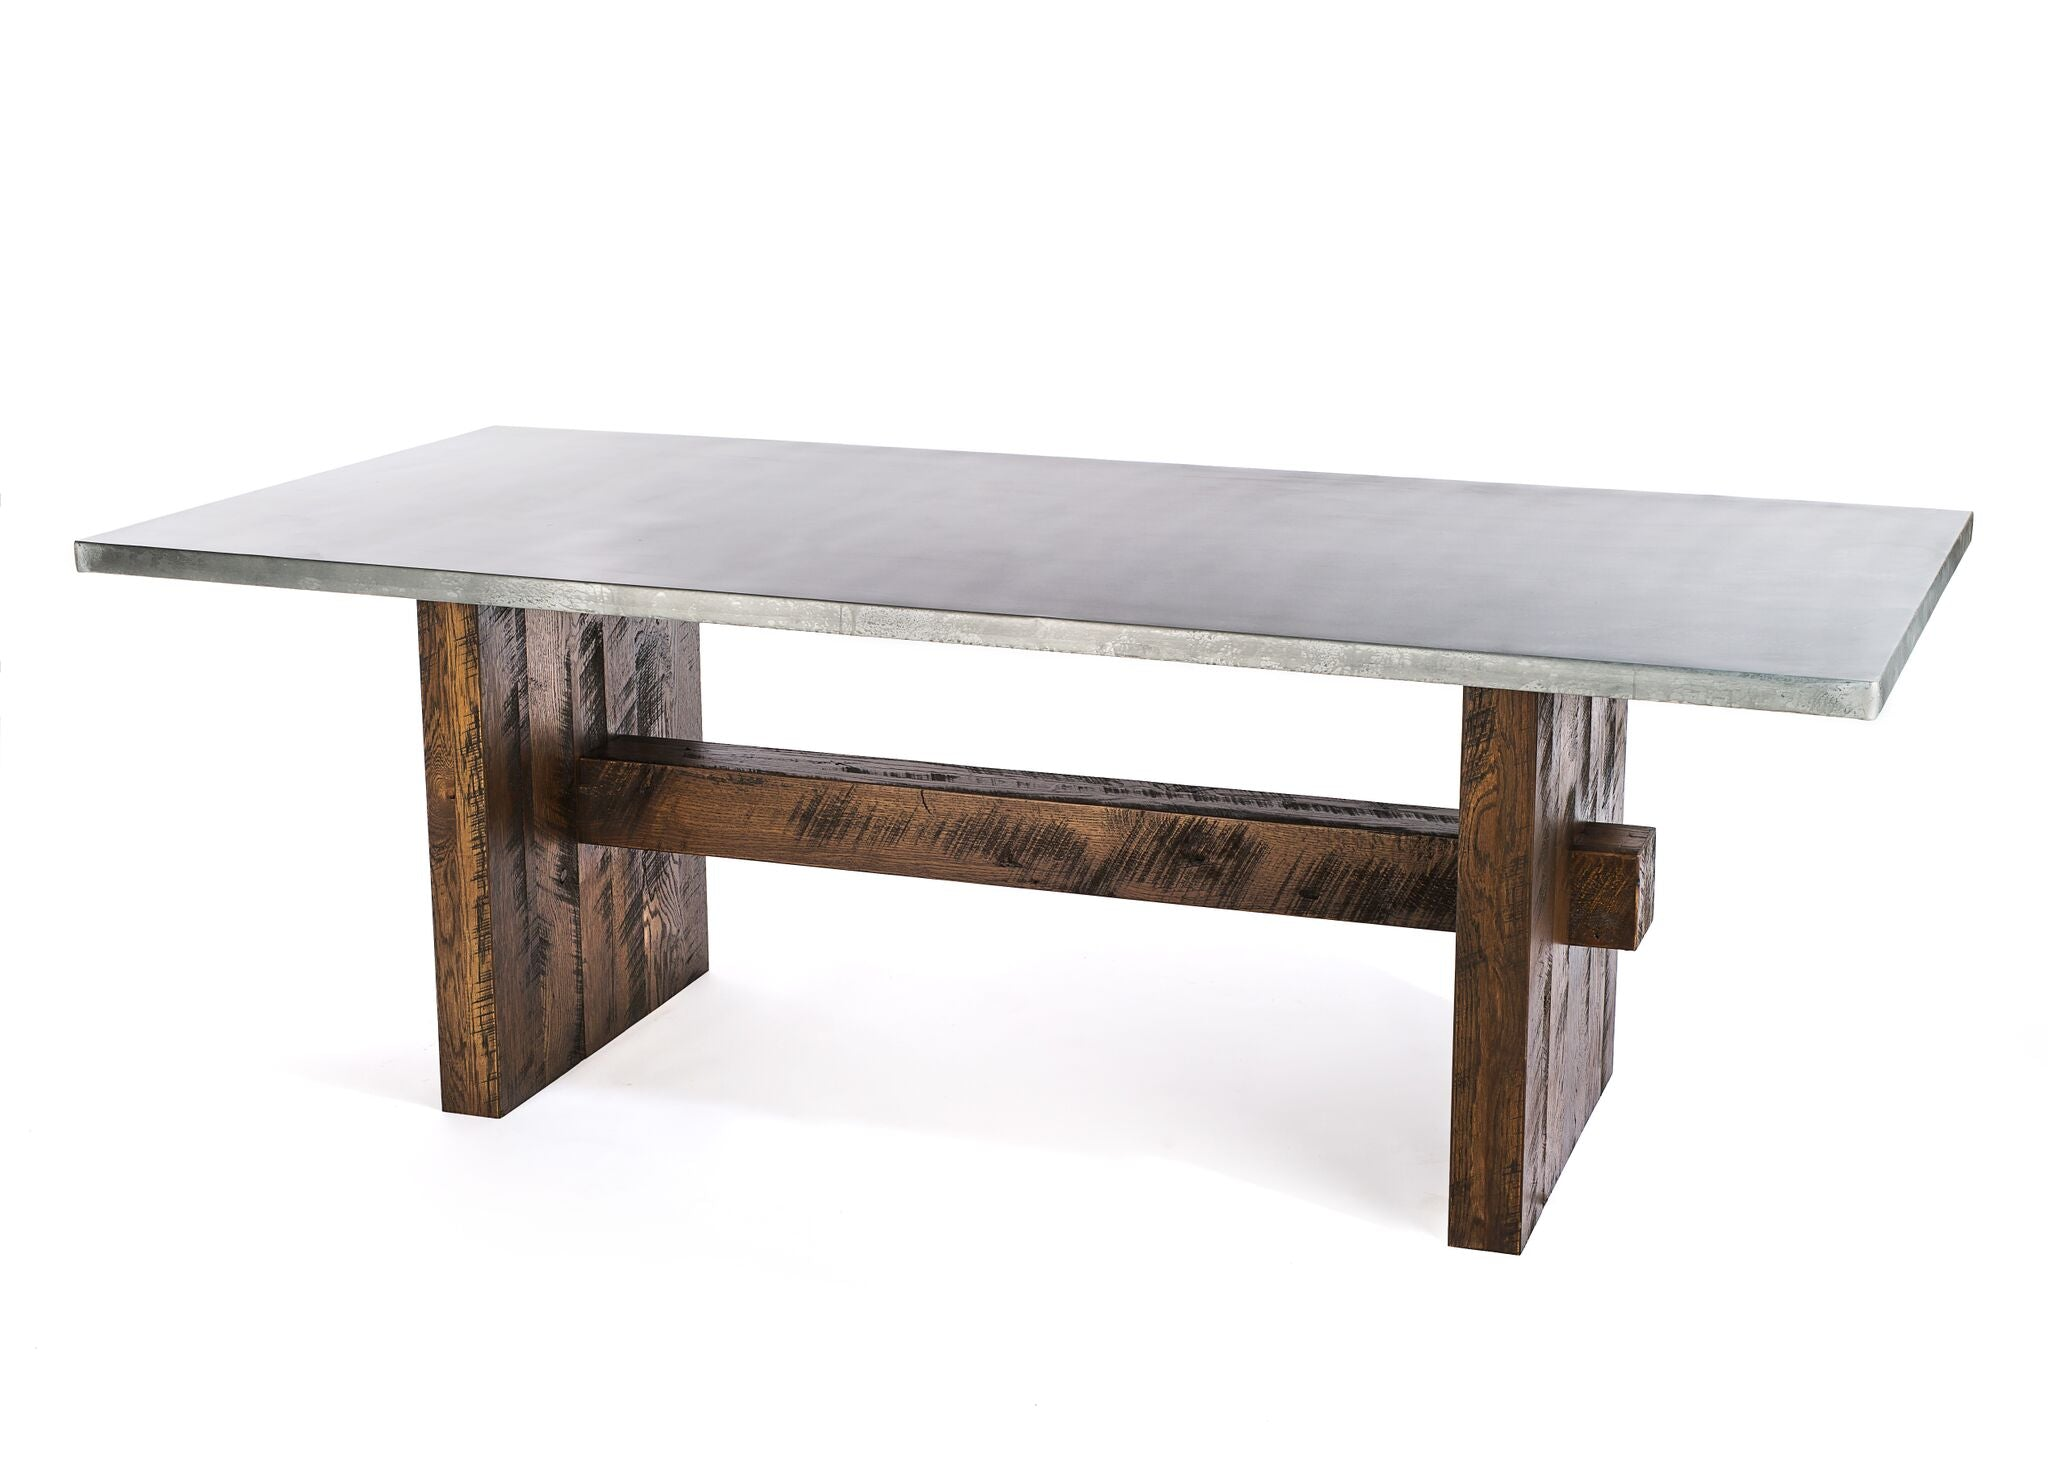 Redford Trestle Table kingston-krafts-zinc-tables.